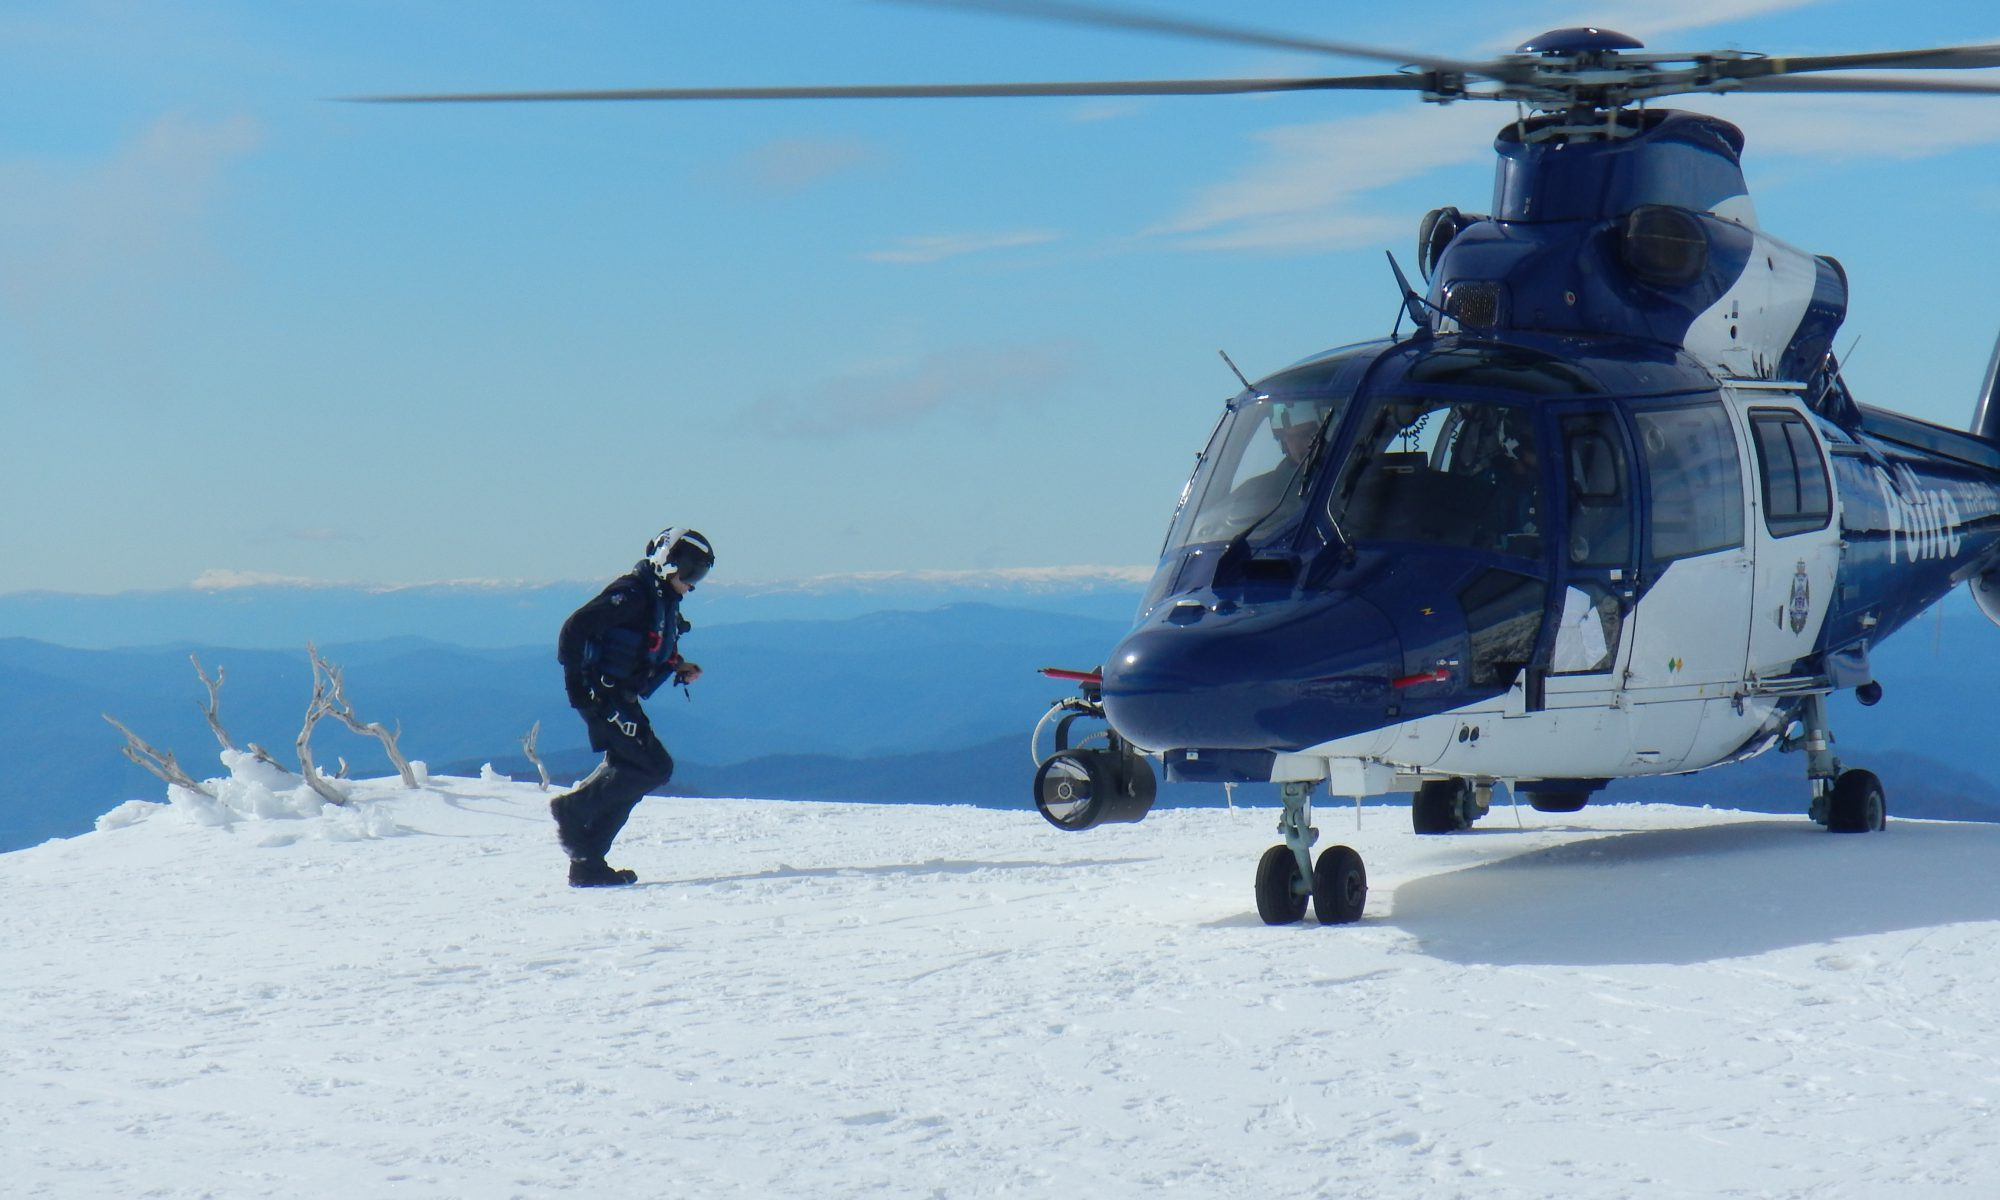 Victoria Police helicopter on Mt Bogong with crewman